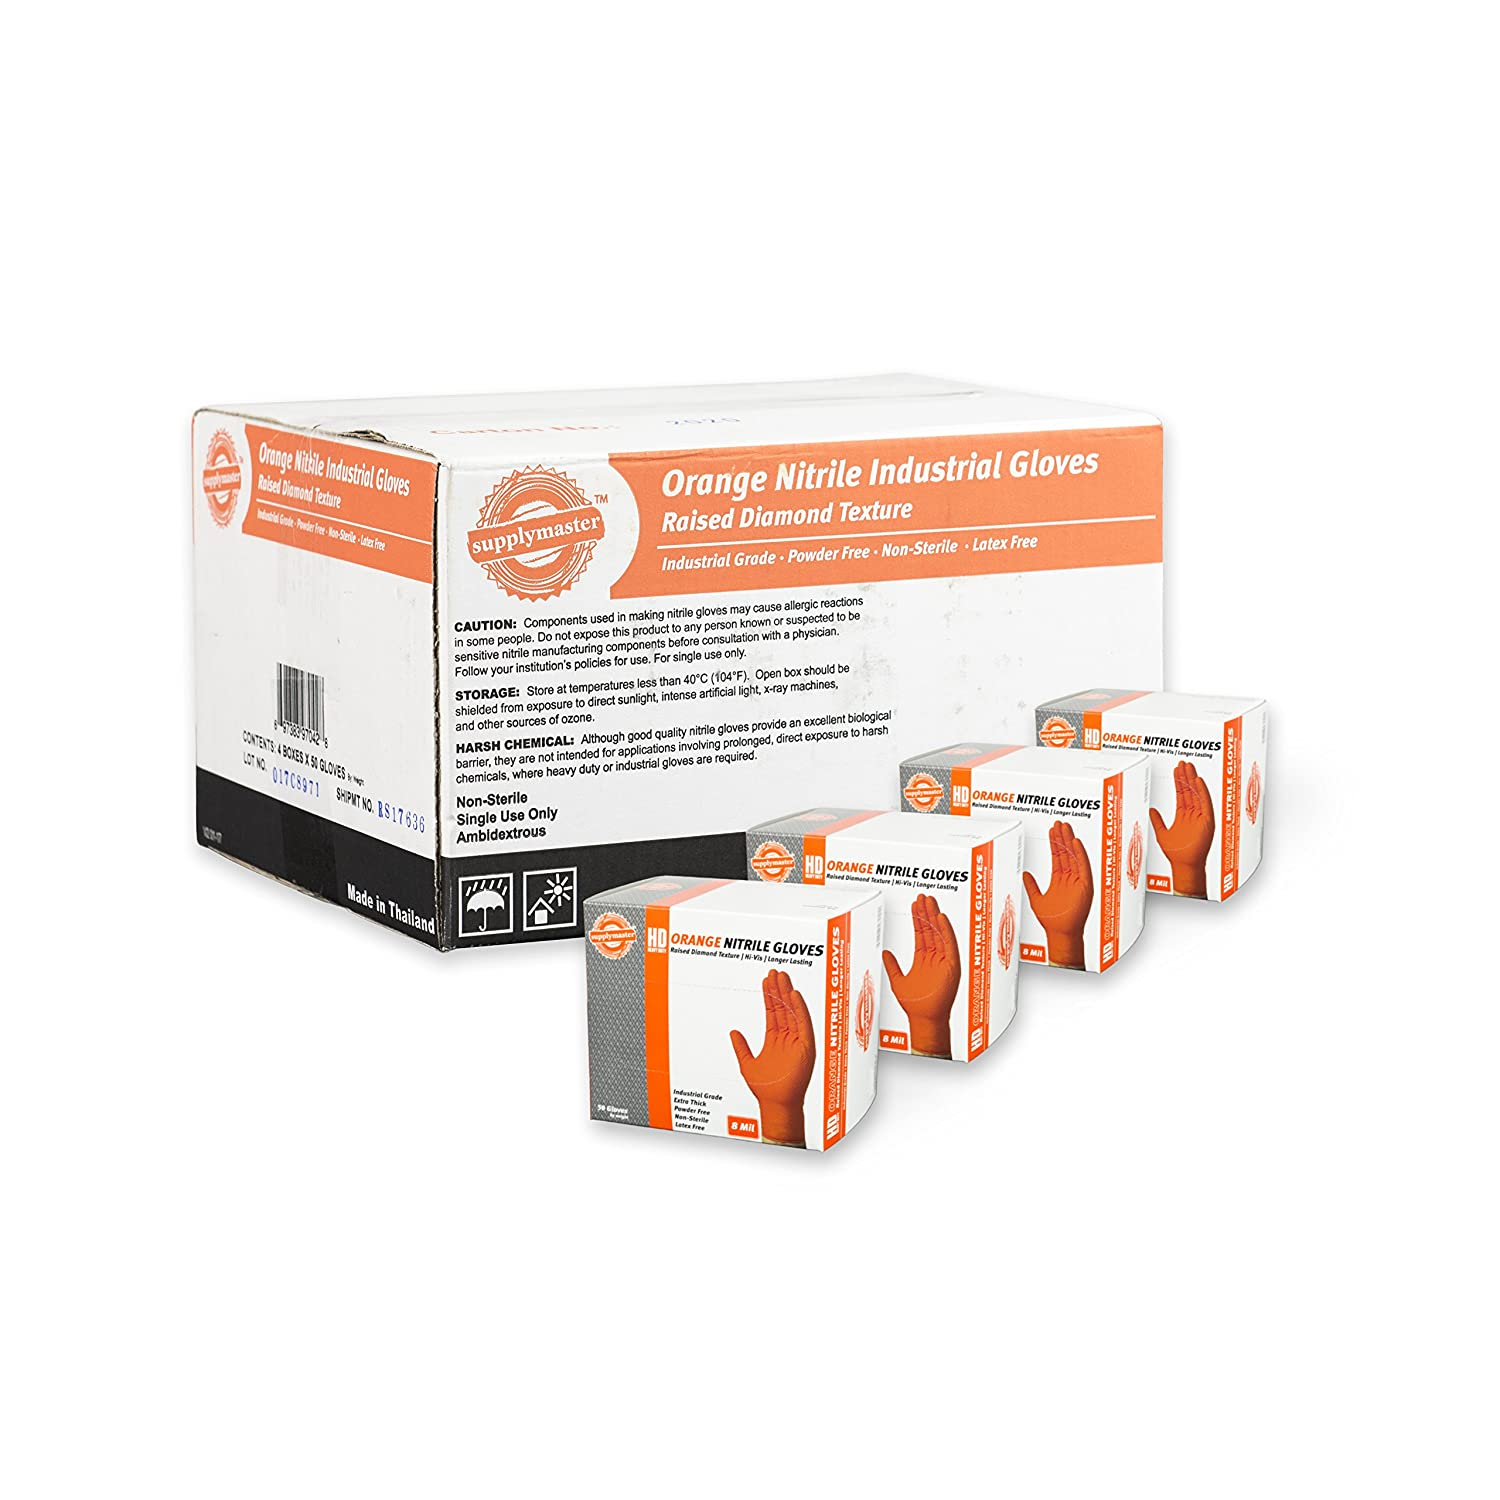 SupplyMaster - SMDTON8L-BX - Diamond Texture Nitrile Gloves - Disposable, Powder Free, Industrial, 8 mil, Large, Orange (Box of 50)